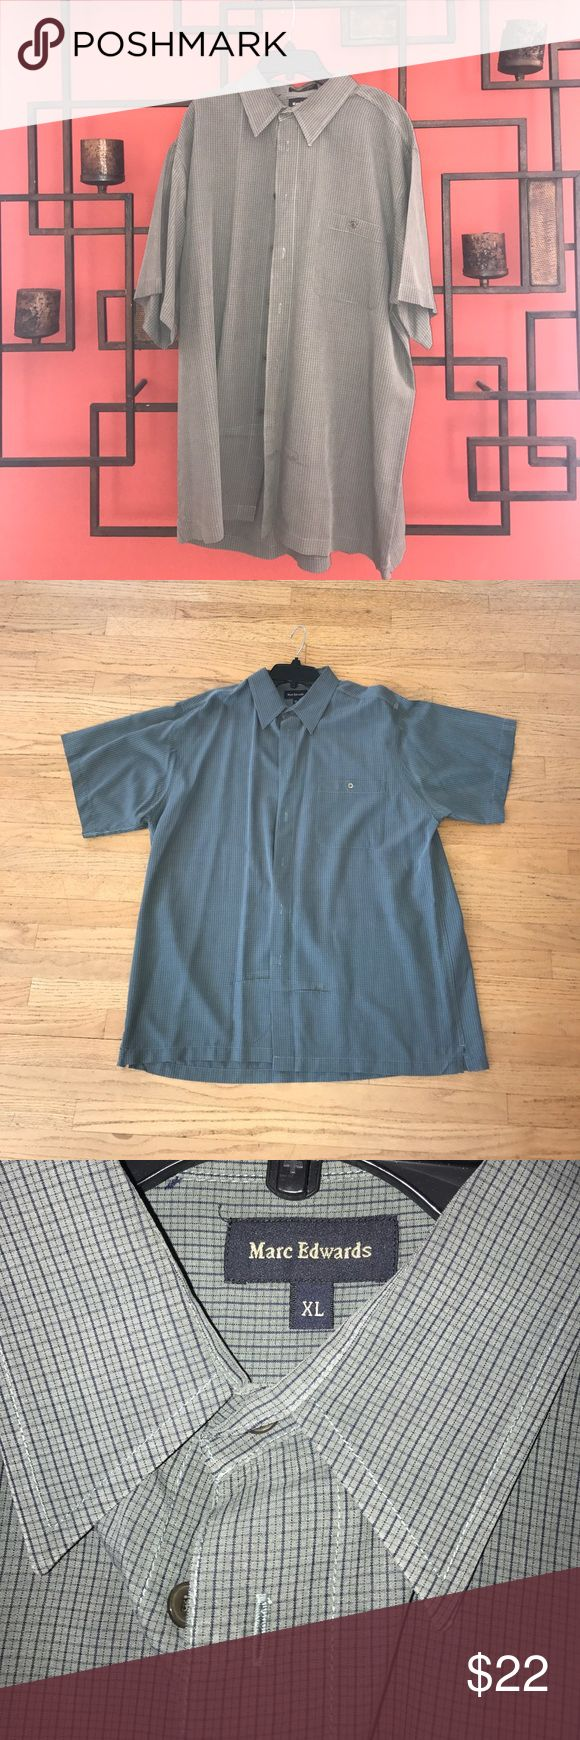 Marc Edwards Shirt! This shirt is very comfortable, and still remains stylish and simple. It's barely worn, like brand new! Dry cleaned as well! marc edwards Shirts